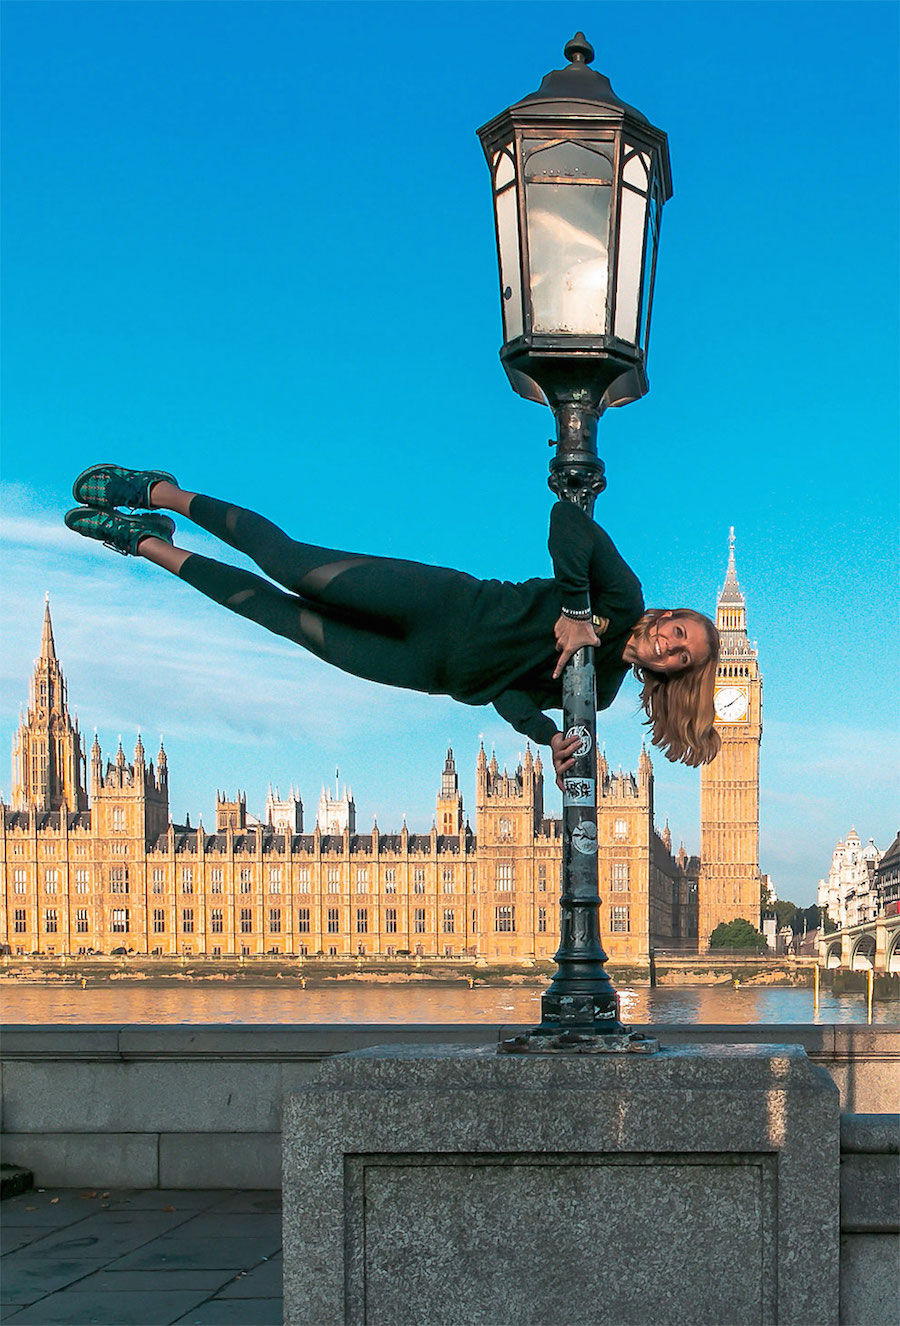 belle-pose-yoga-londra-new-york-kristina-kashtanova-14